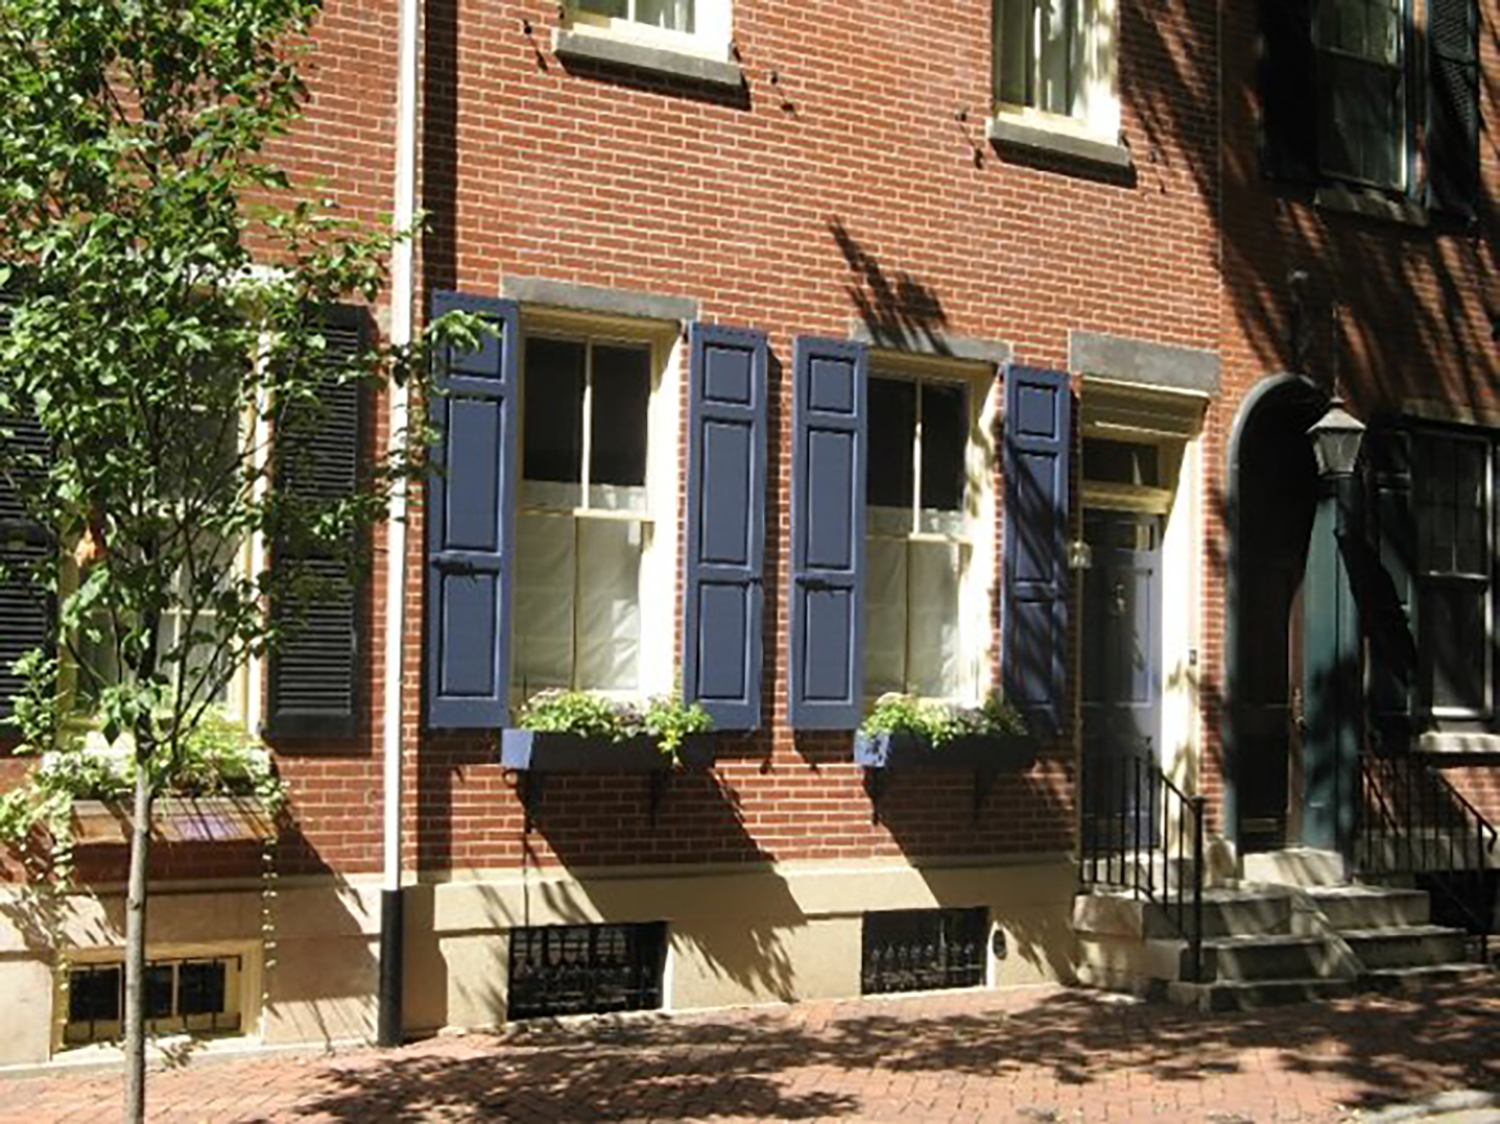 Figure 7: The first home of the Academy's Egyptian collection, on Friedlander Street in Philadelphia.